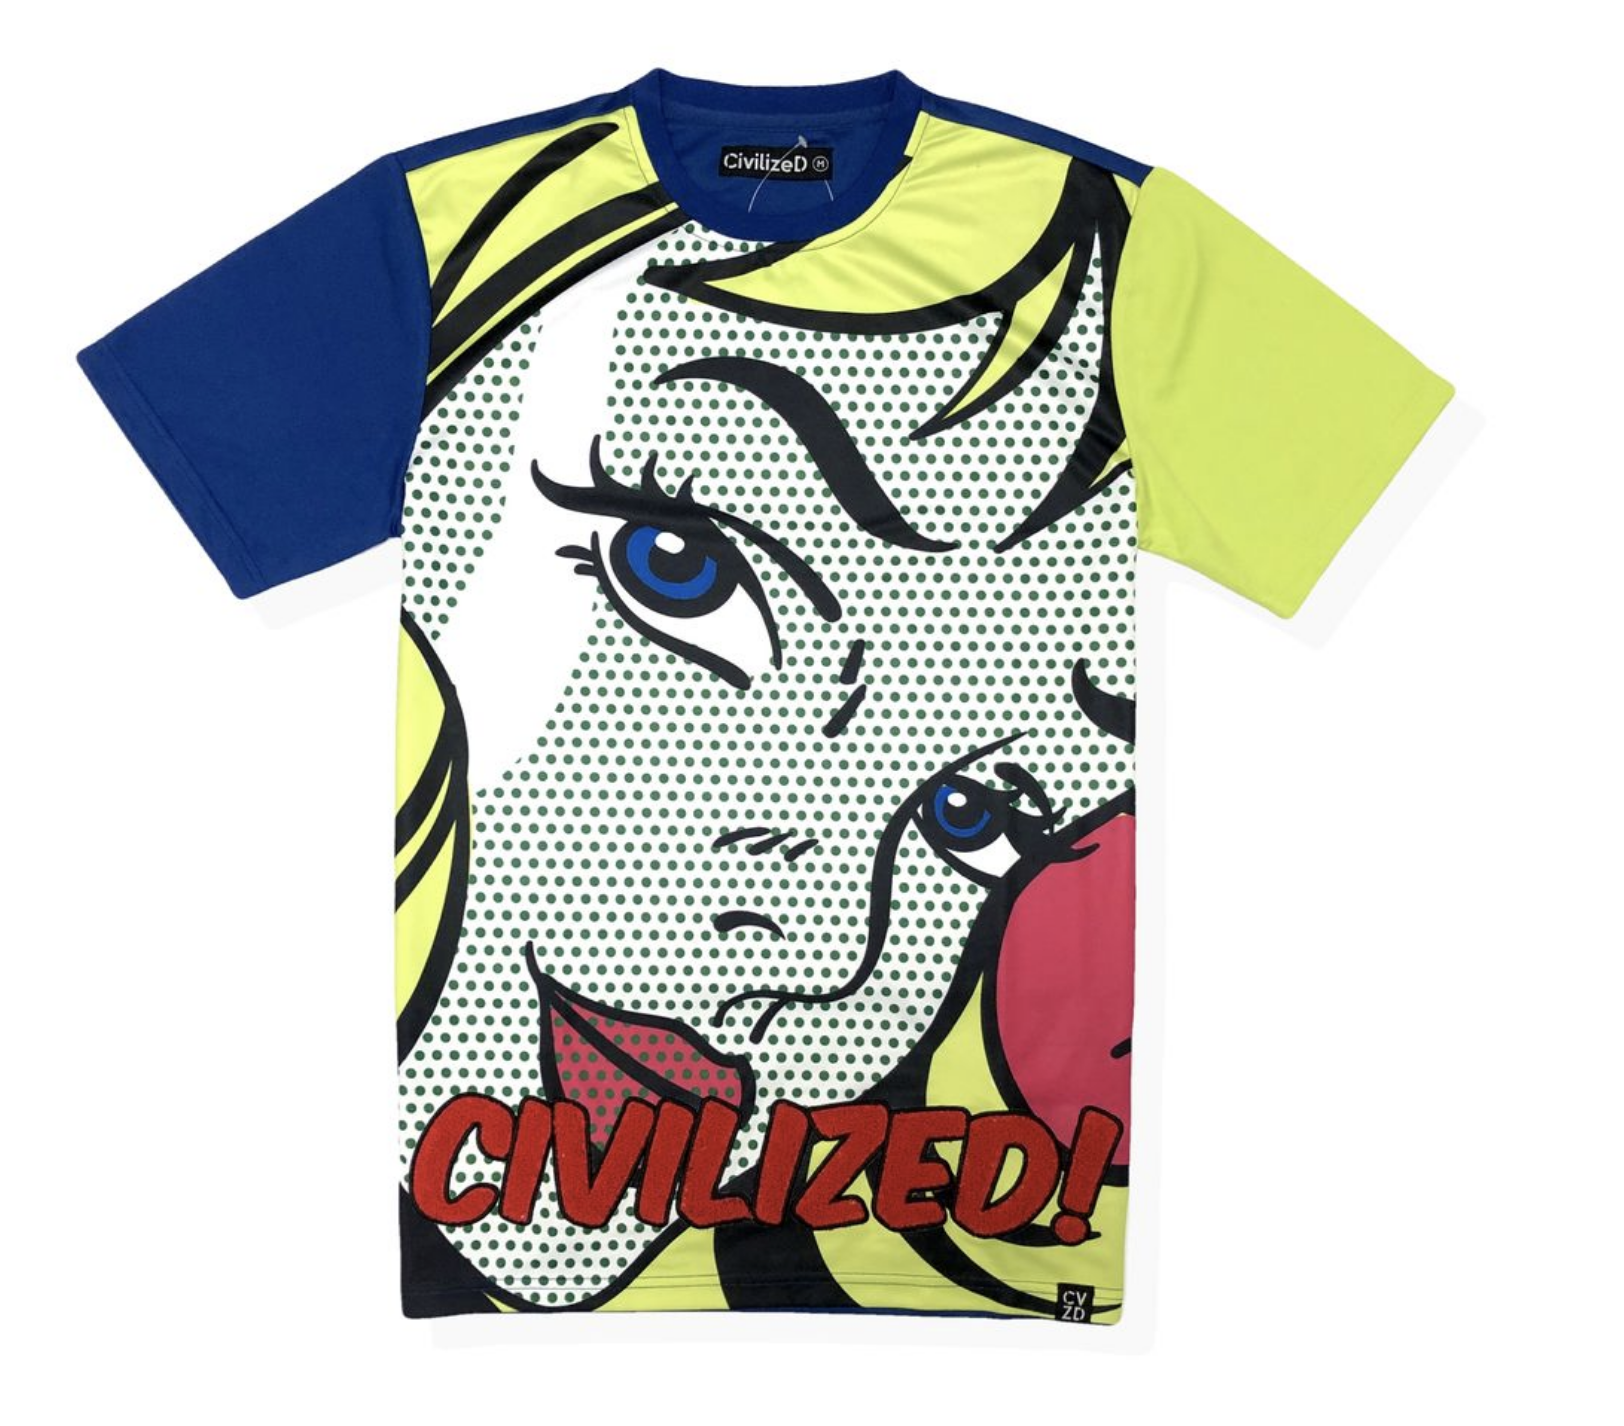 Retro Comic Civilized Tee (Green) / D14